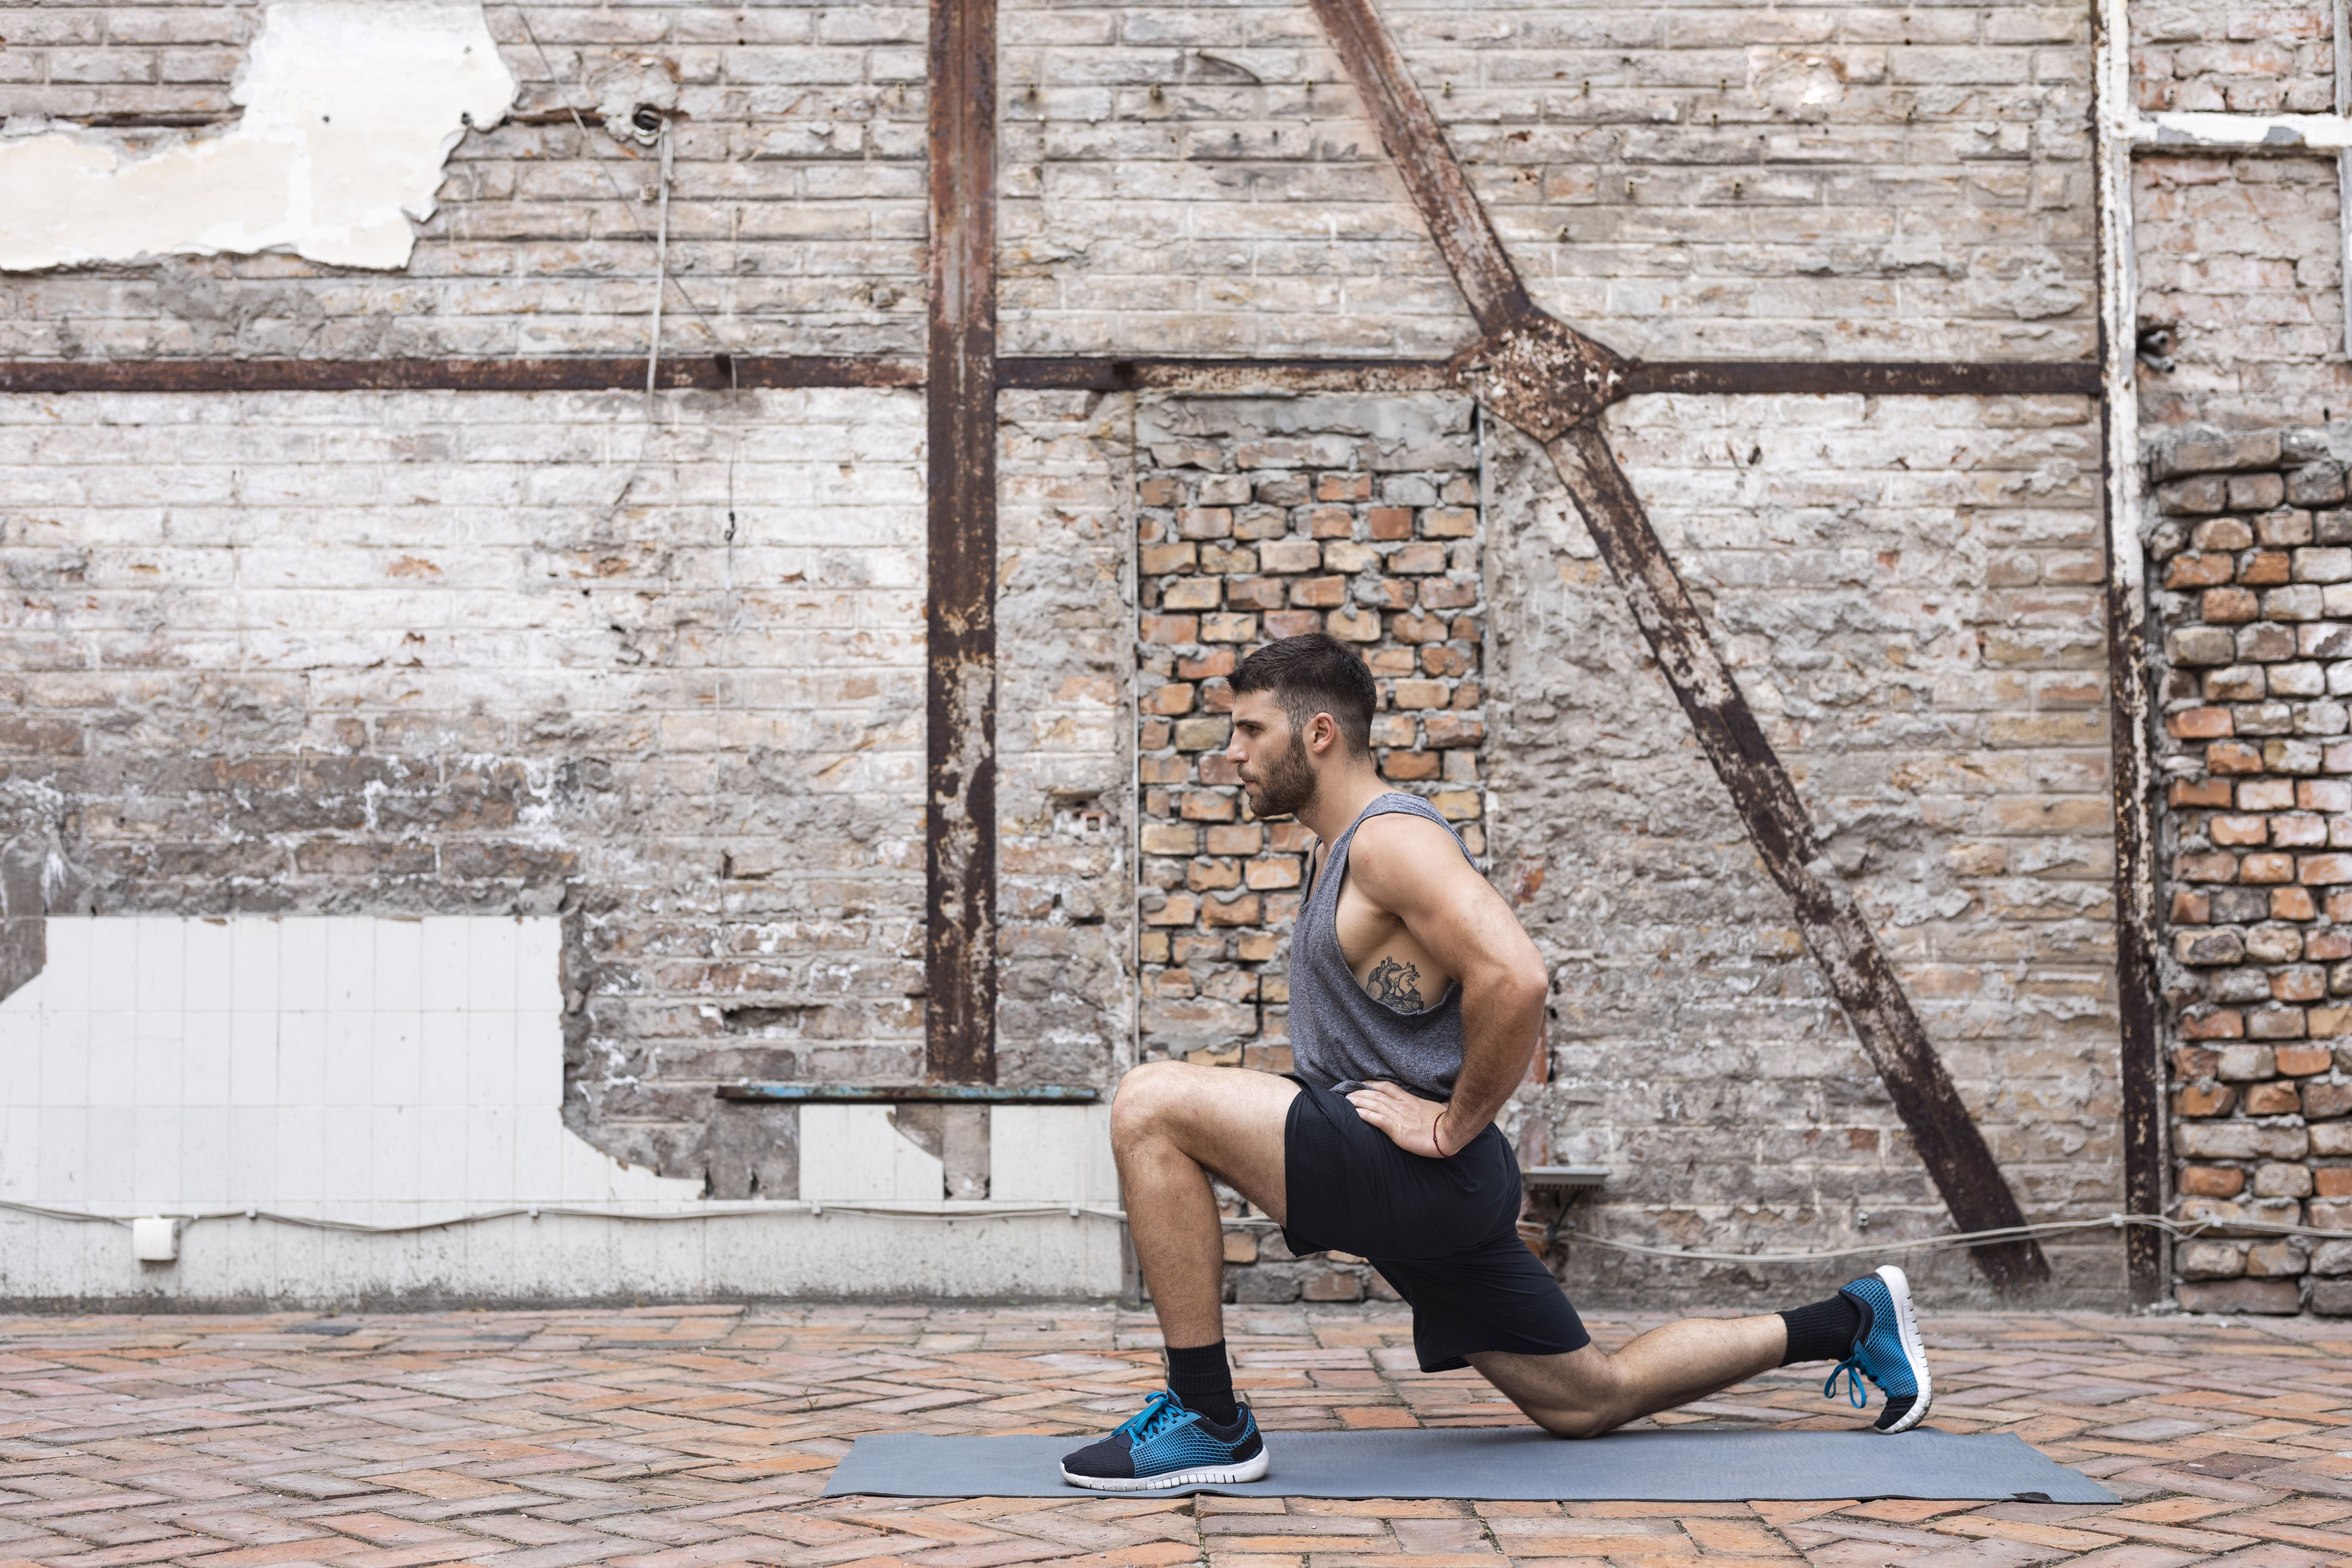 This Bodyweight Quad Burner Will Push Your Legs and Lungs For Full Body Gains At Home